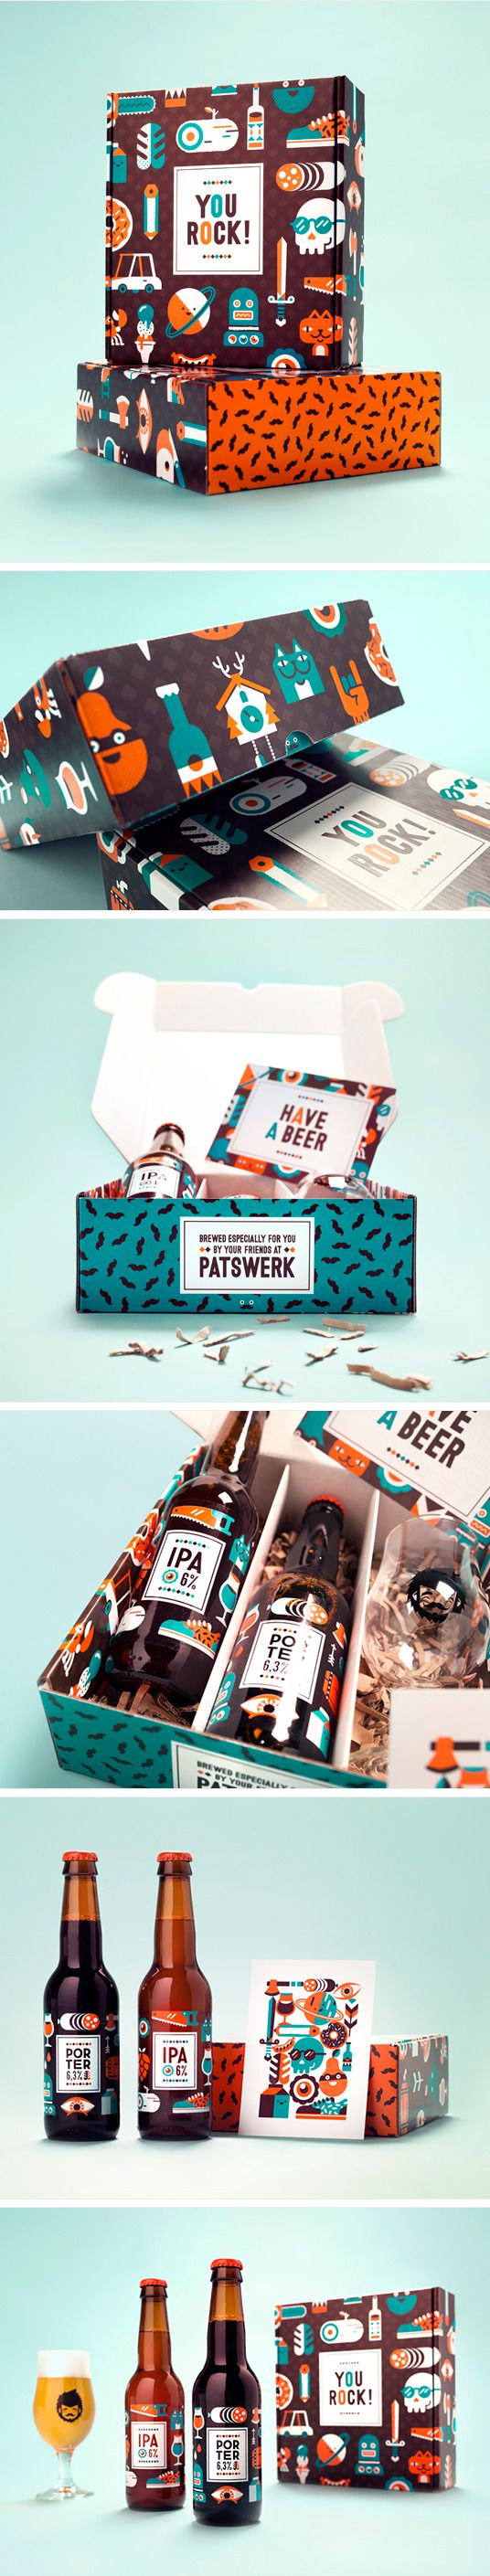 Patswerk Anniversary Beer. Sounds like 'password' to me. #packaging #bottle #design